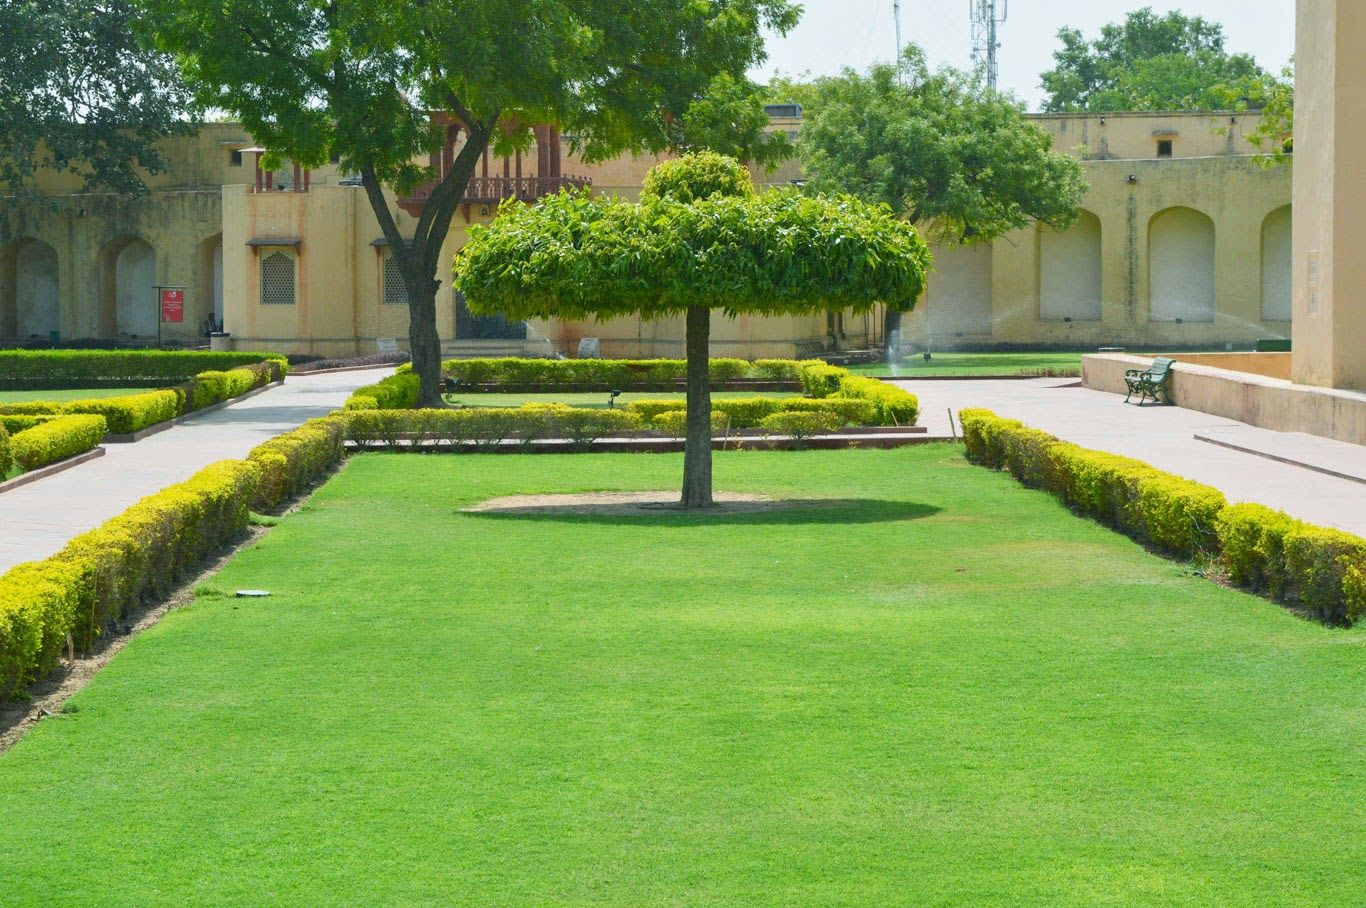 Sanjay Photo World Garden backgrounds for Photoshop Free